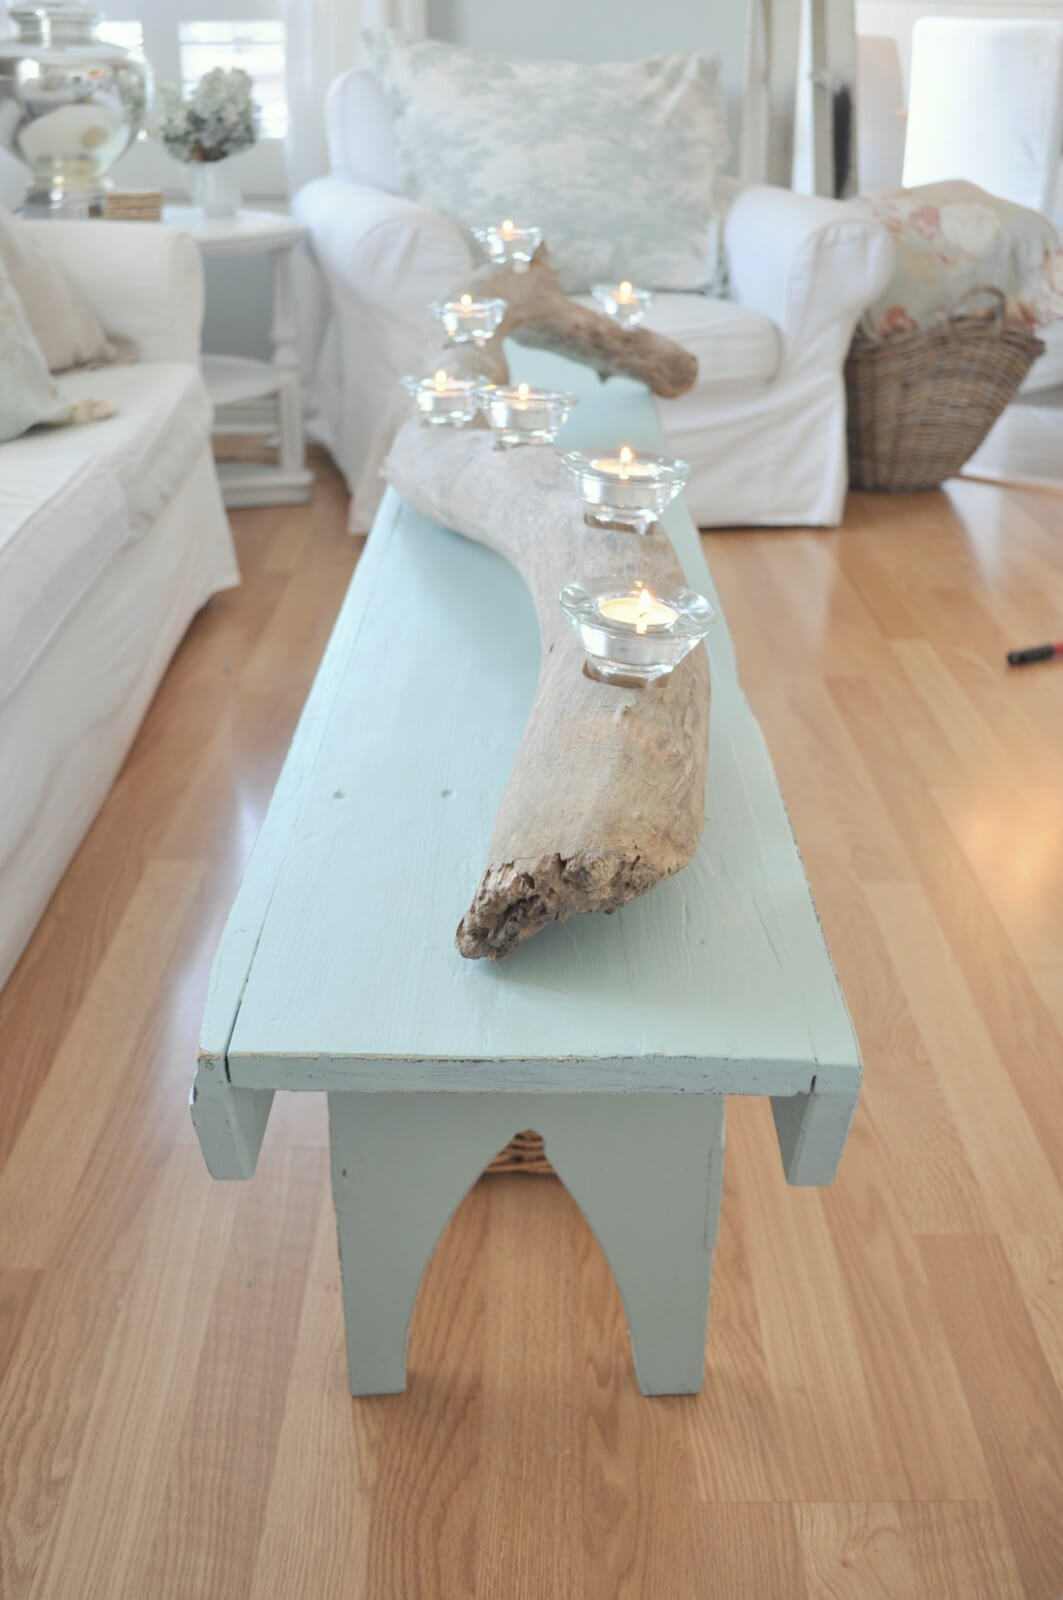 Driftwood Coffee Table for a Beach House